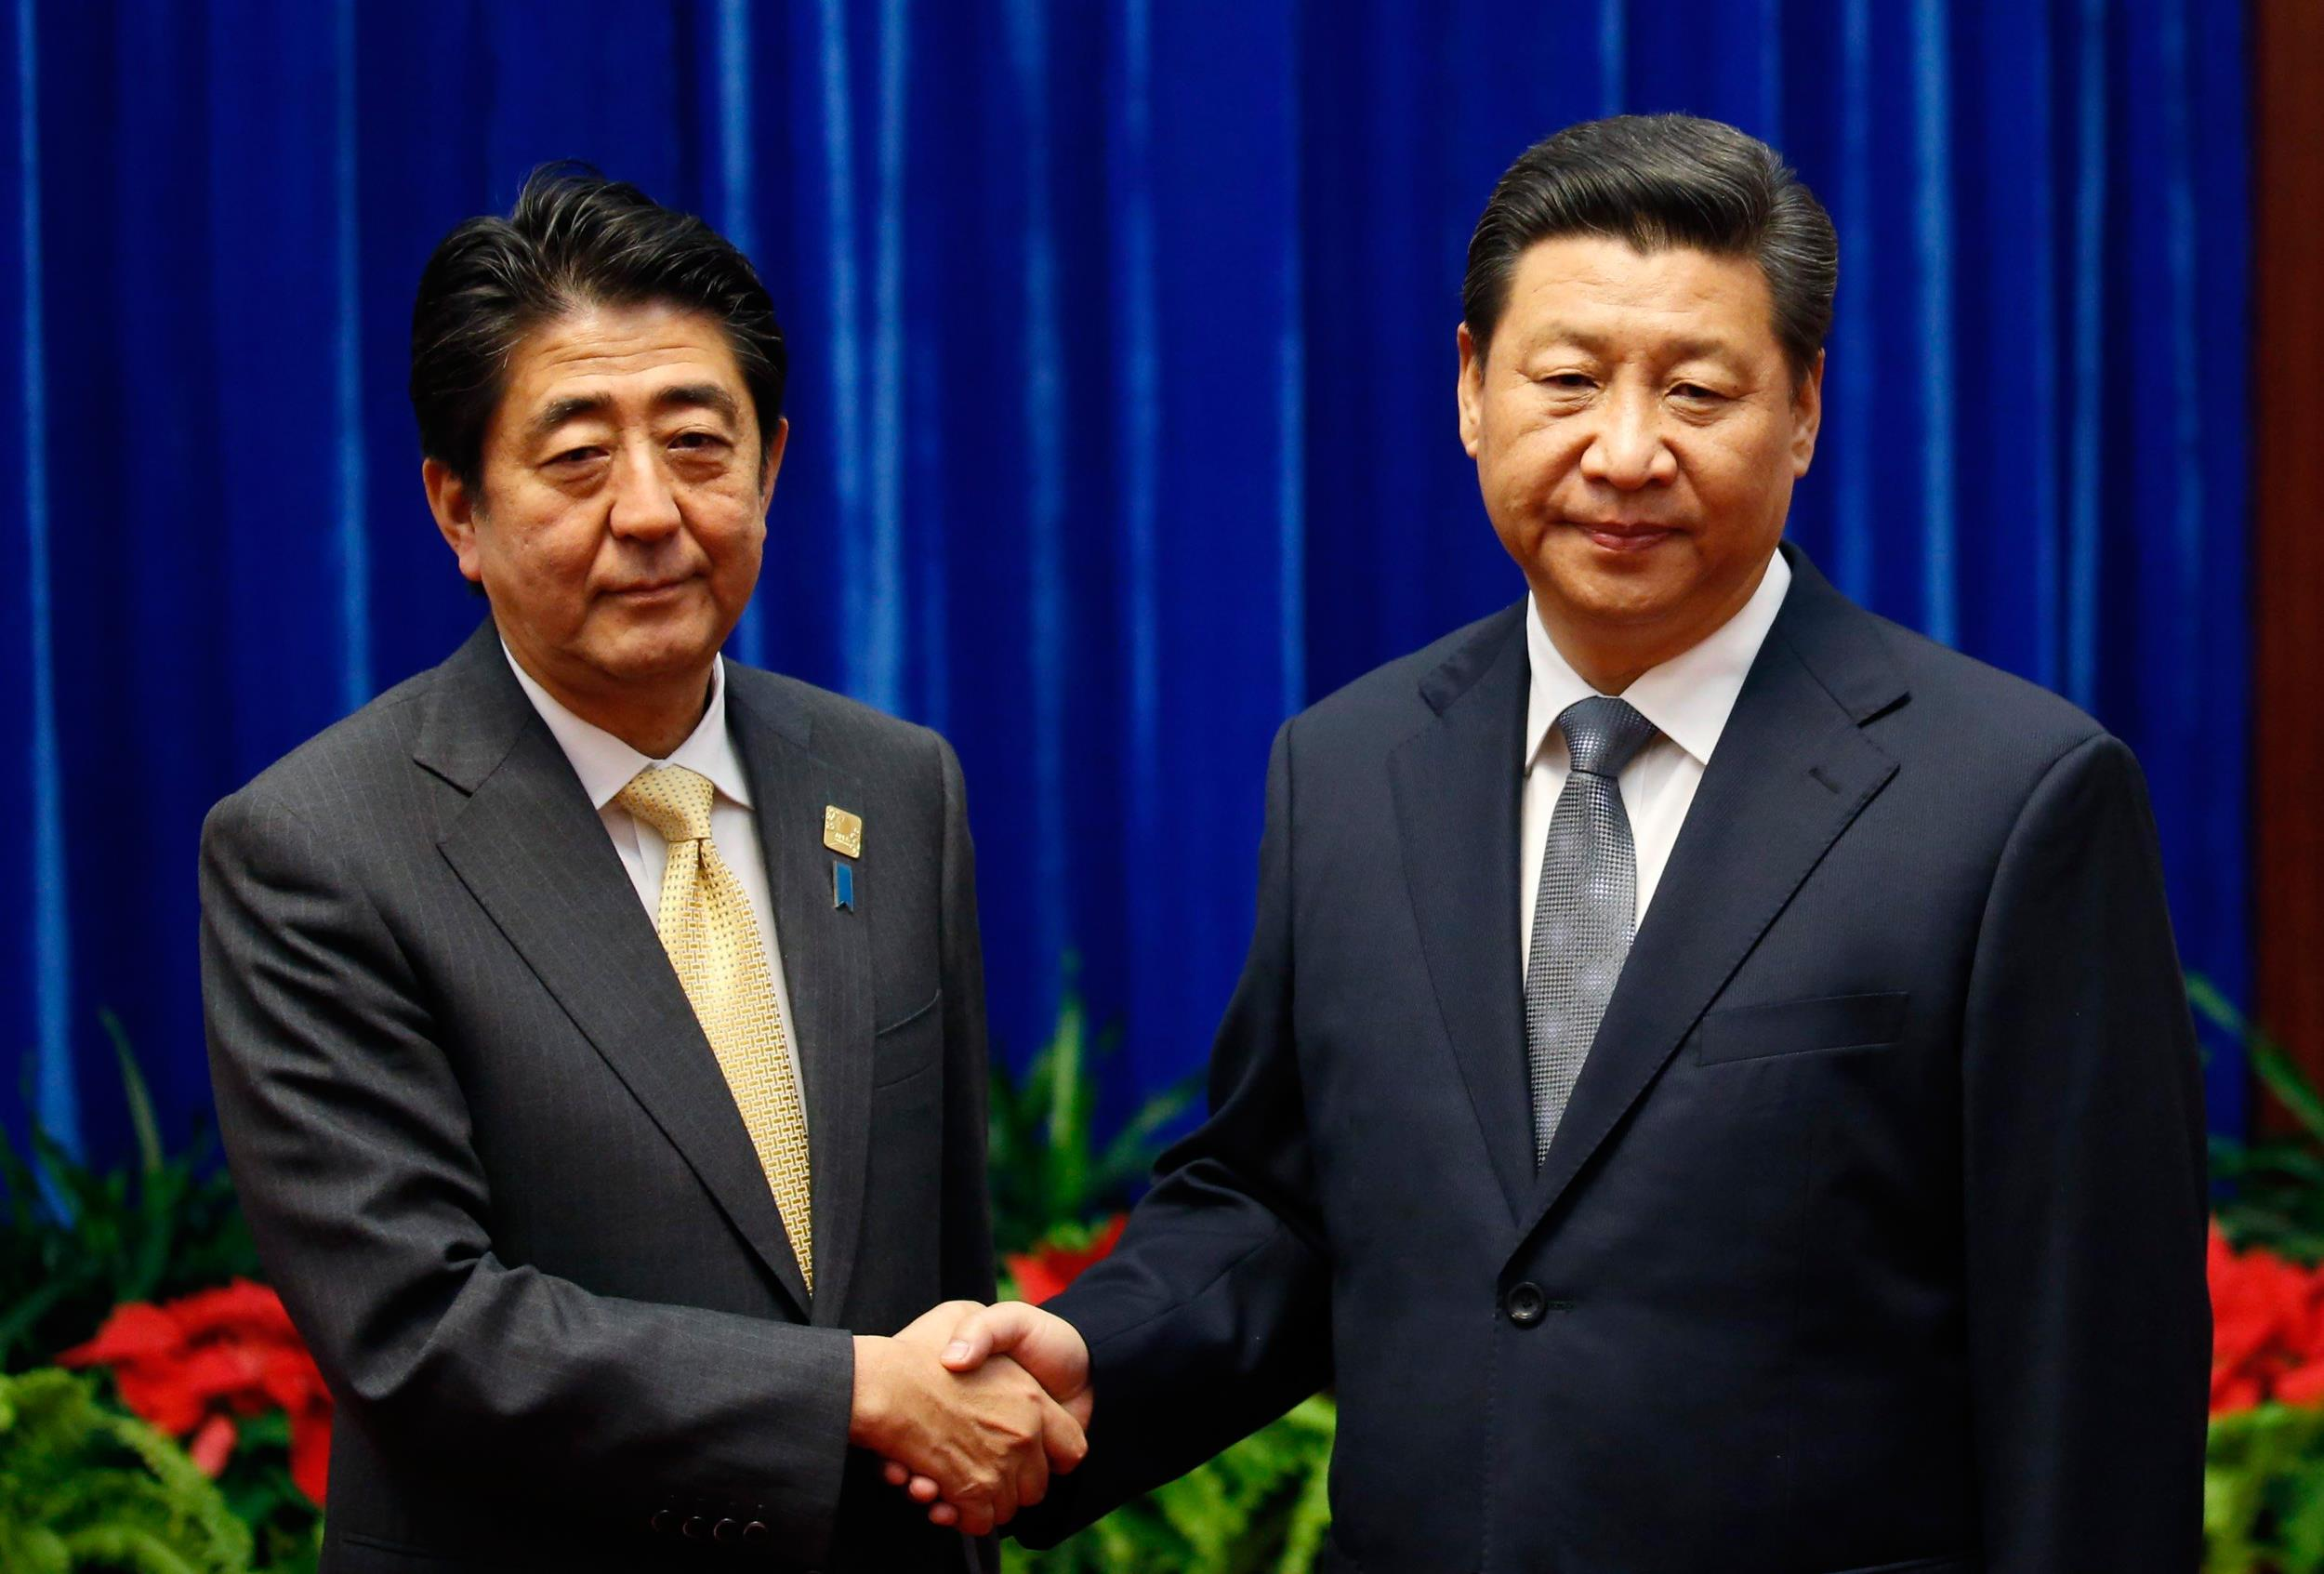 Frosty Meeting Between Xi and Abe Aims To Break Ice